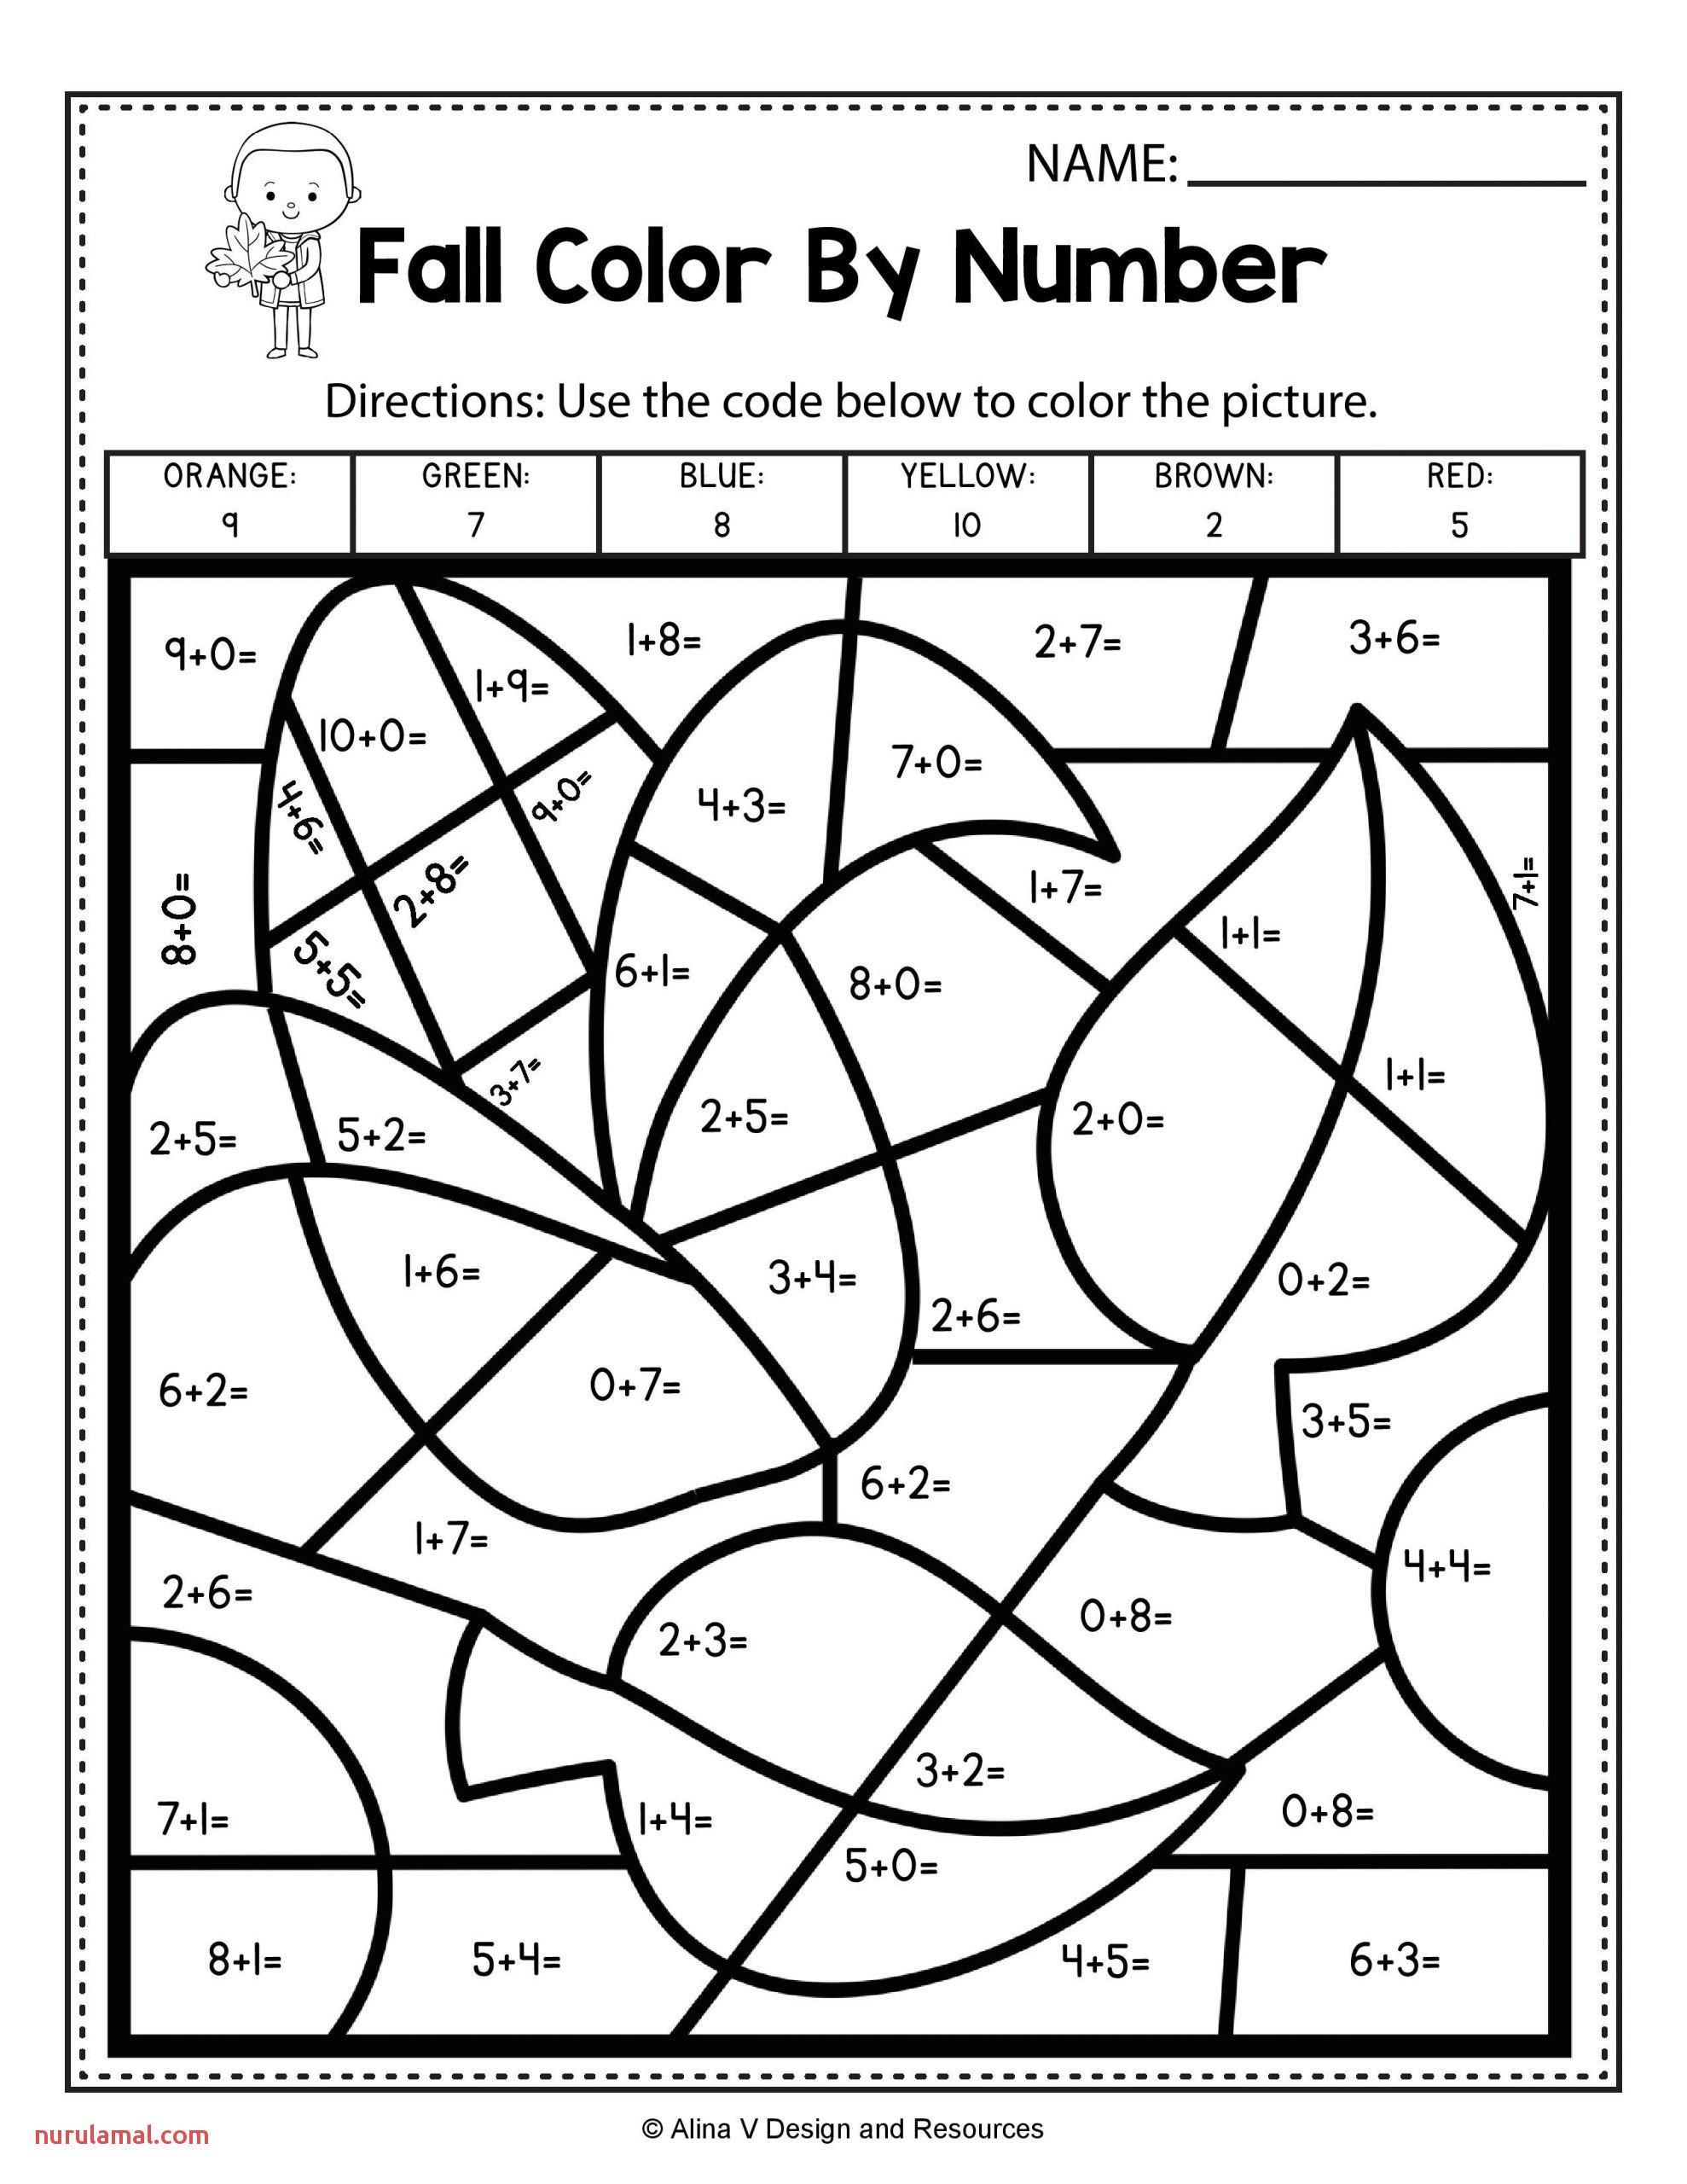 Abeka Math Worksheets Abeka Worksheets for K4 Printable and Activities 4th Grade